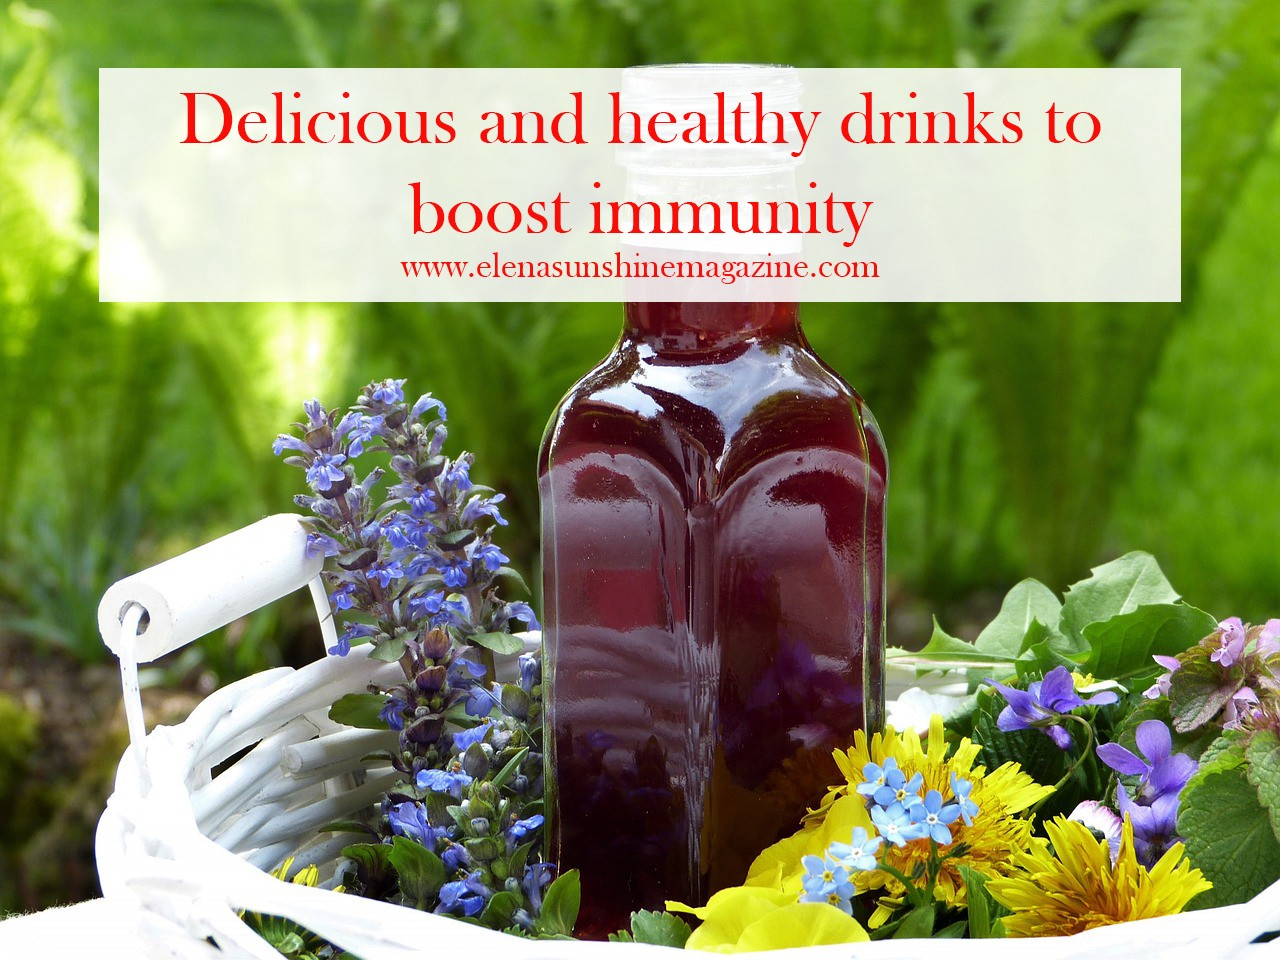 Delicious and healthy drinks to boost immunity